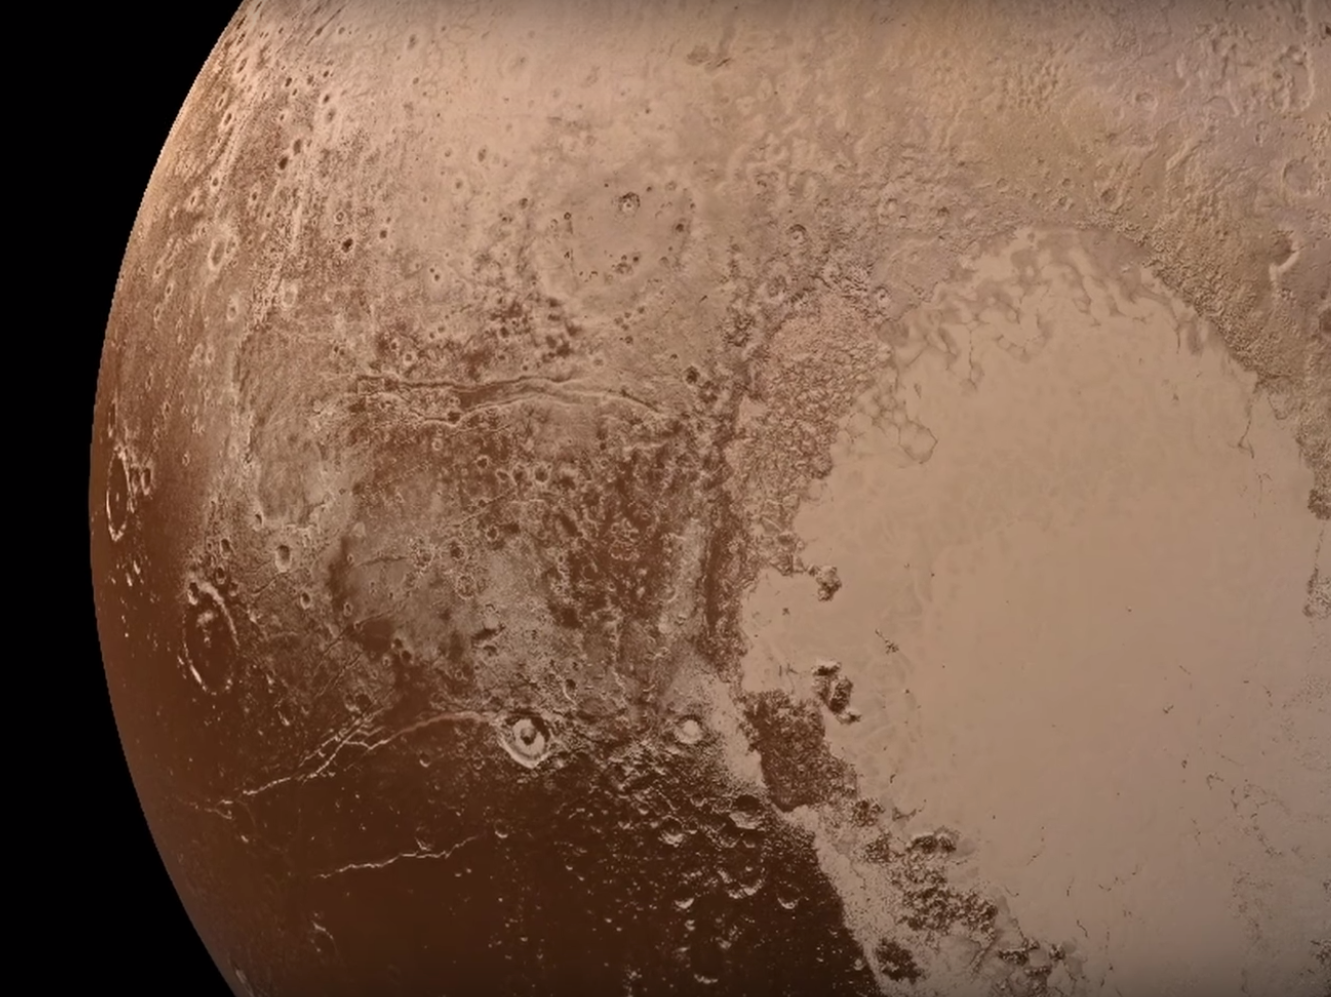 NASA Shares Video of What a Landing on Pluto Might Look Like